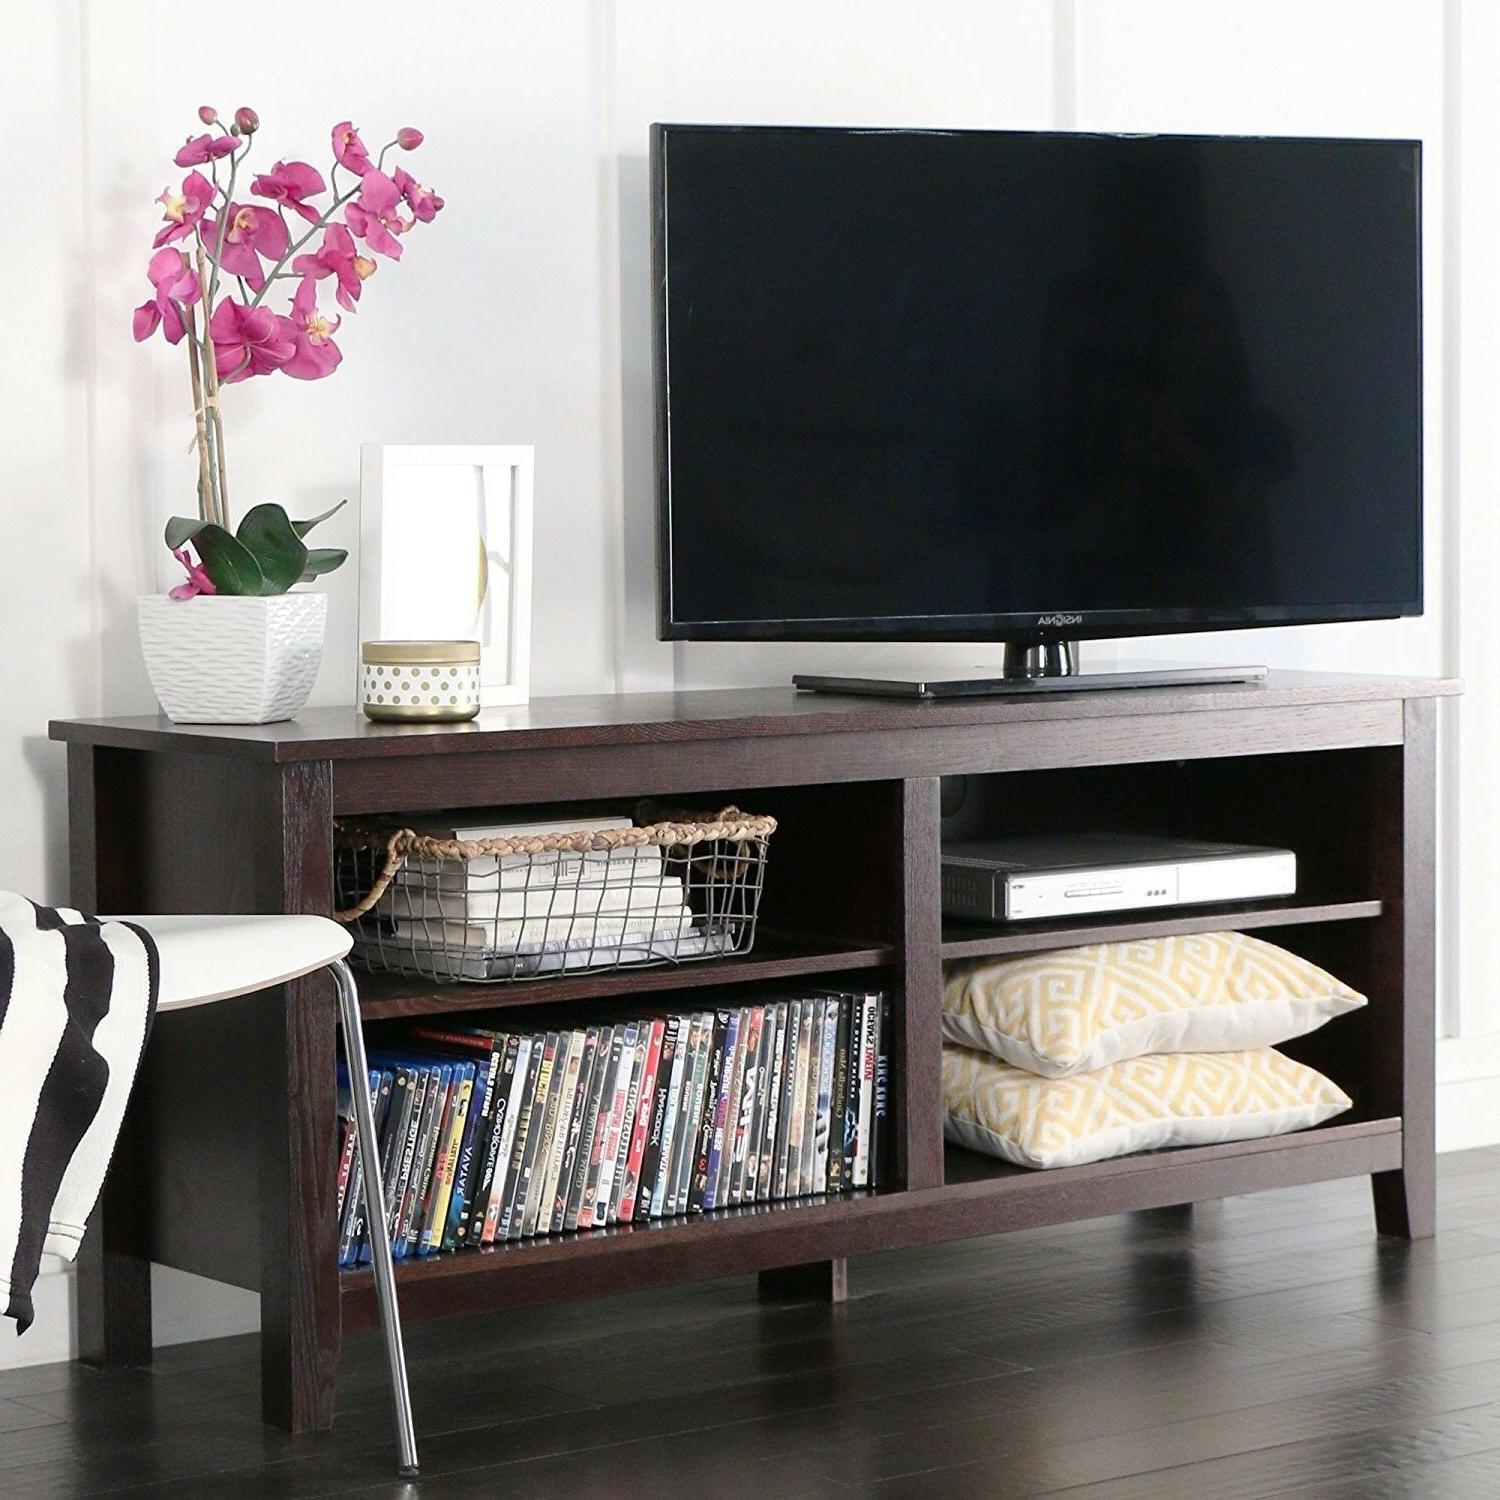 "WE Furniture 58"" Wood TV Stand Storage Console Espresso"